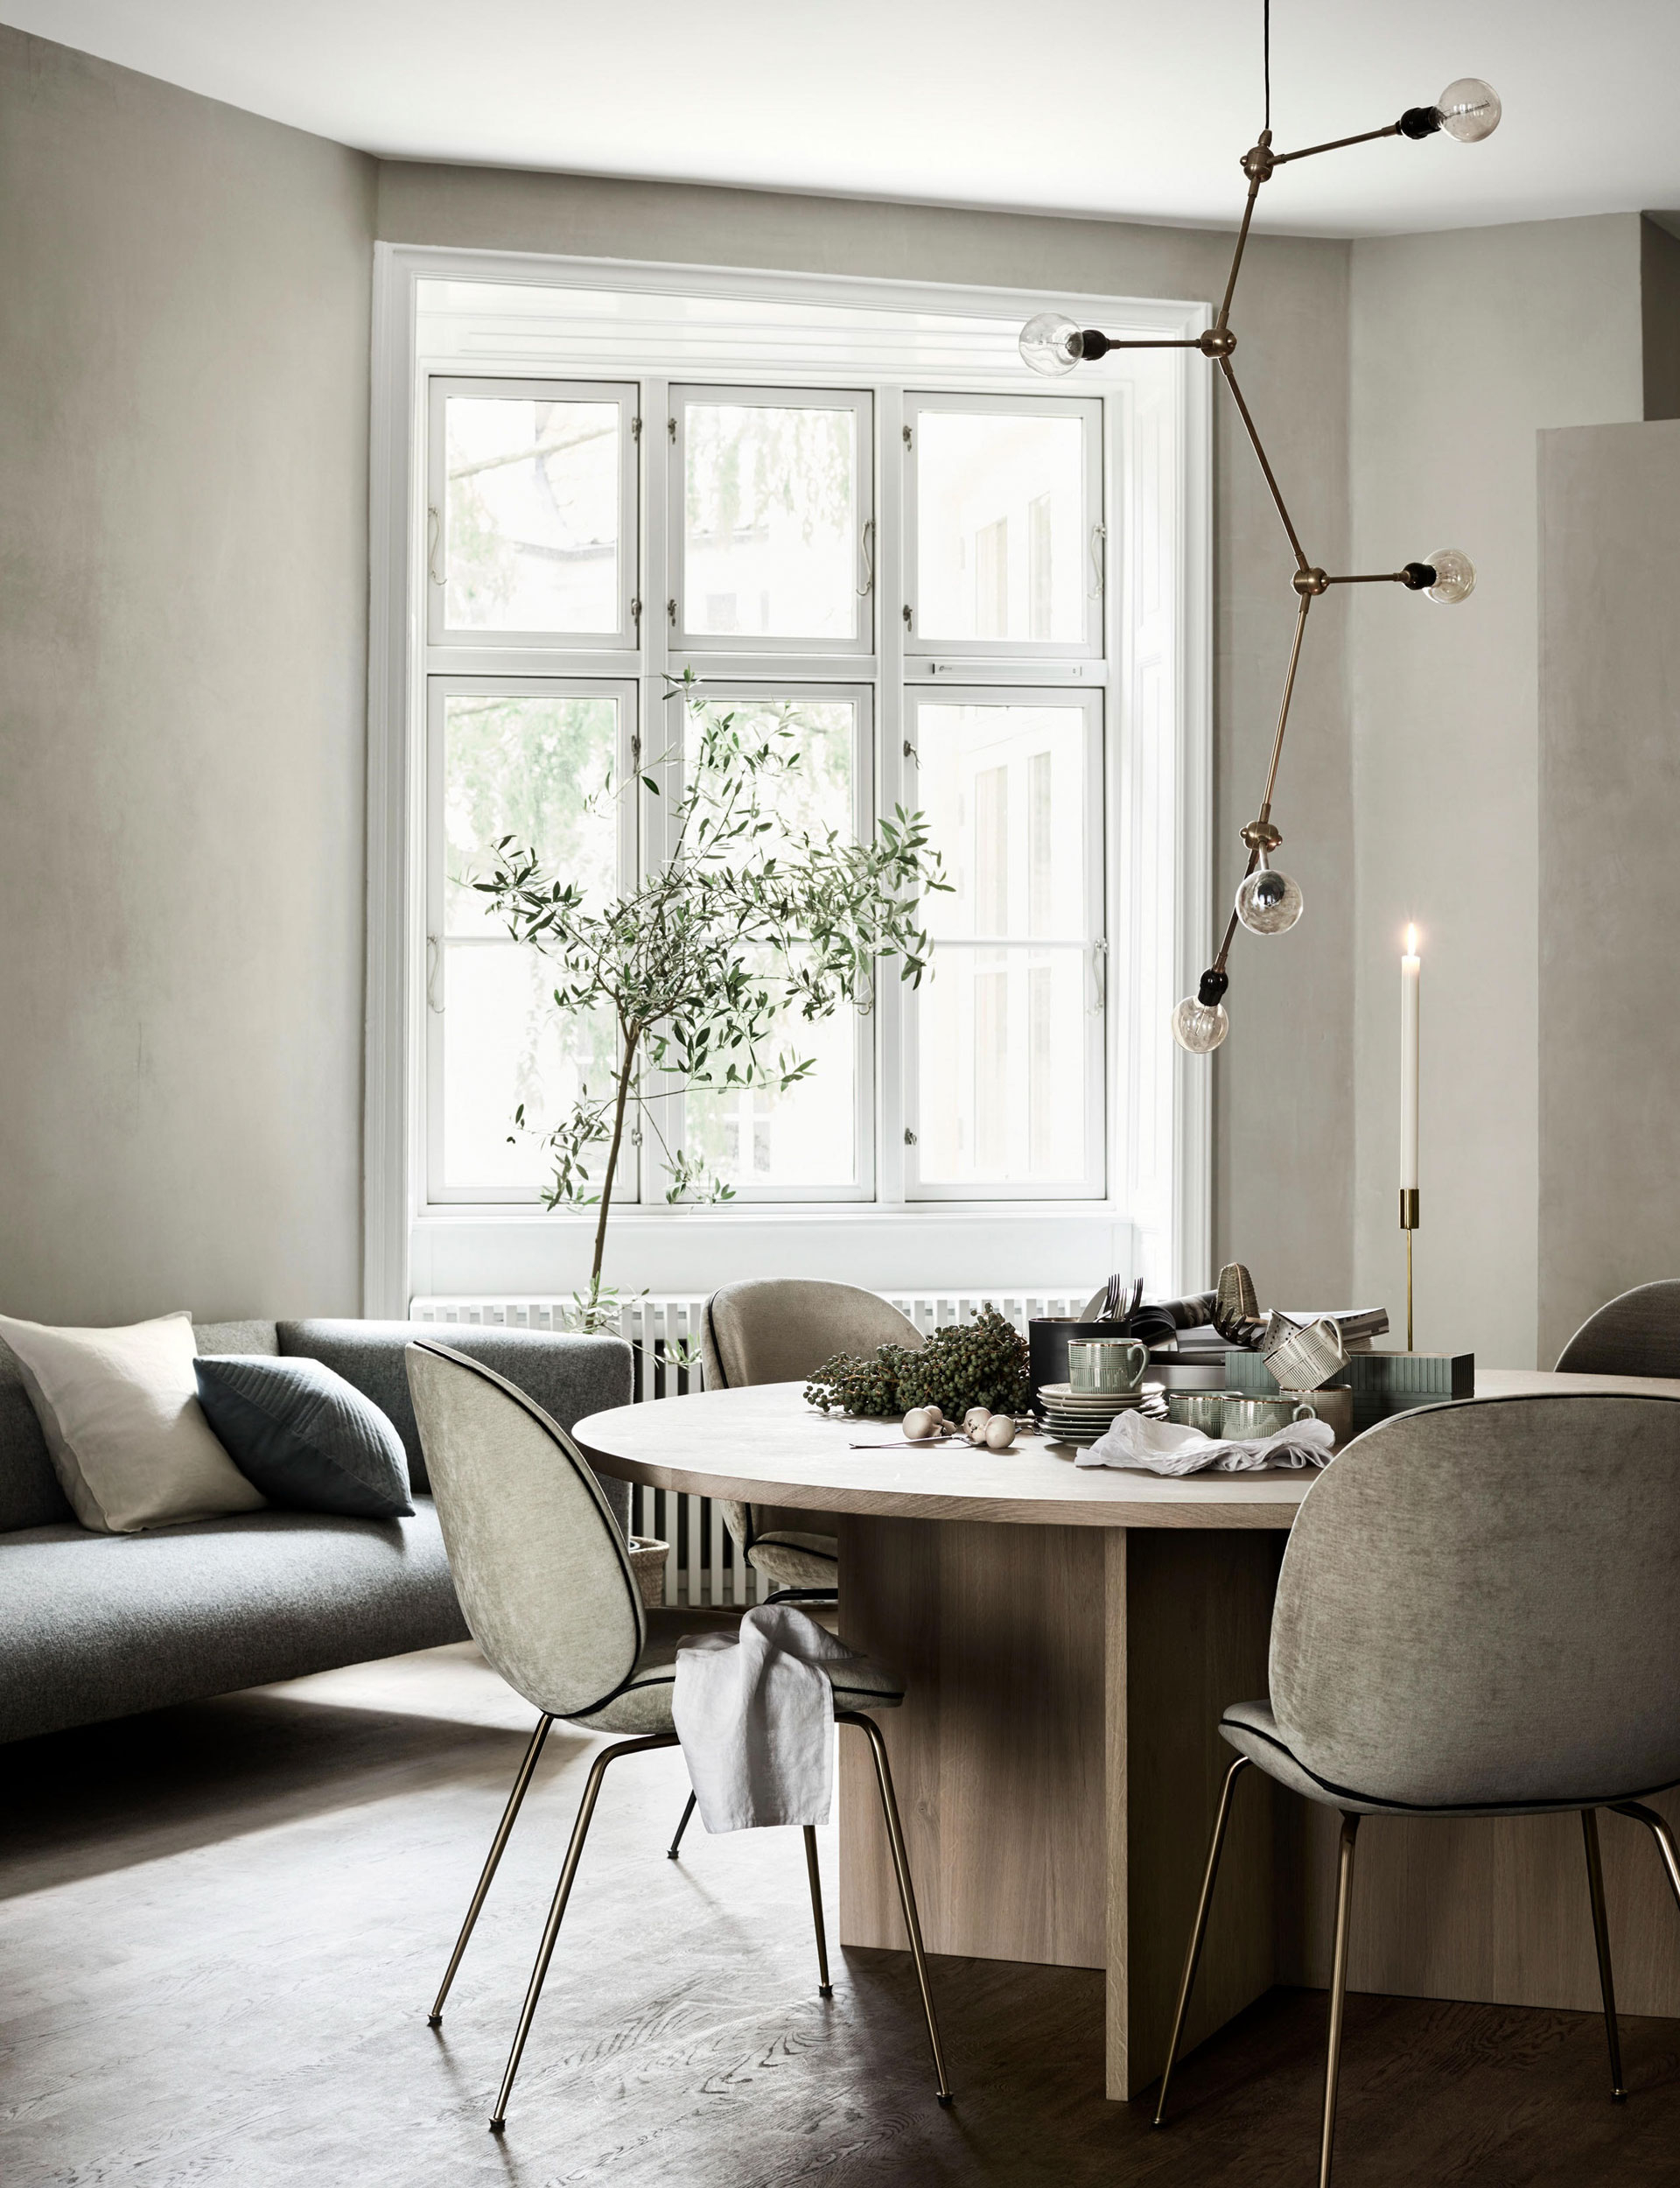 Interior Lovers Rejoice As Hm Home Opens In Christchurch in sizing 1920 X 2500